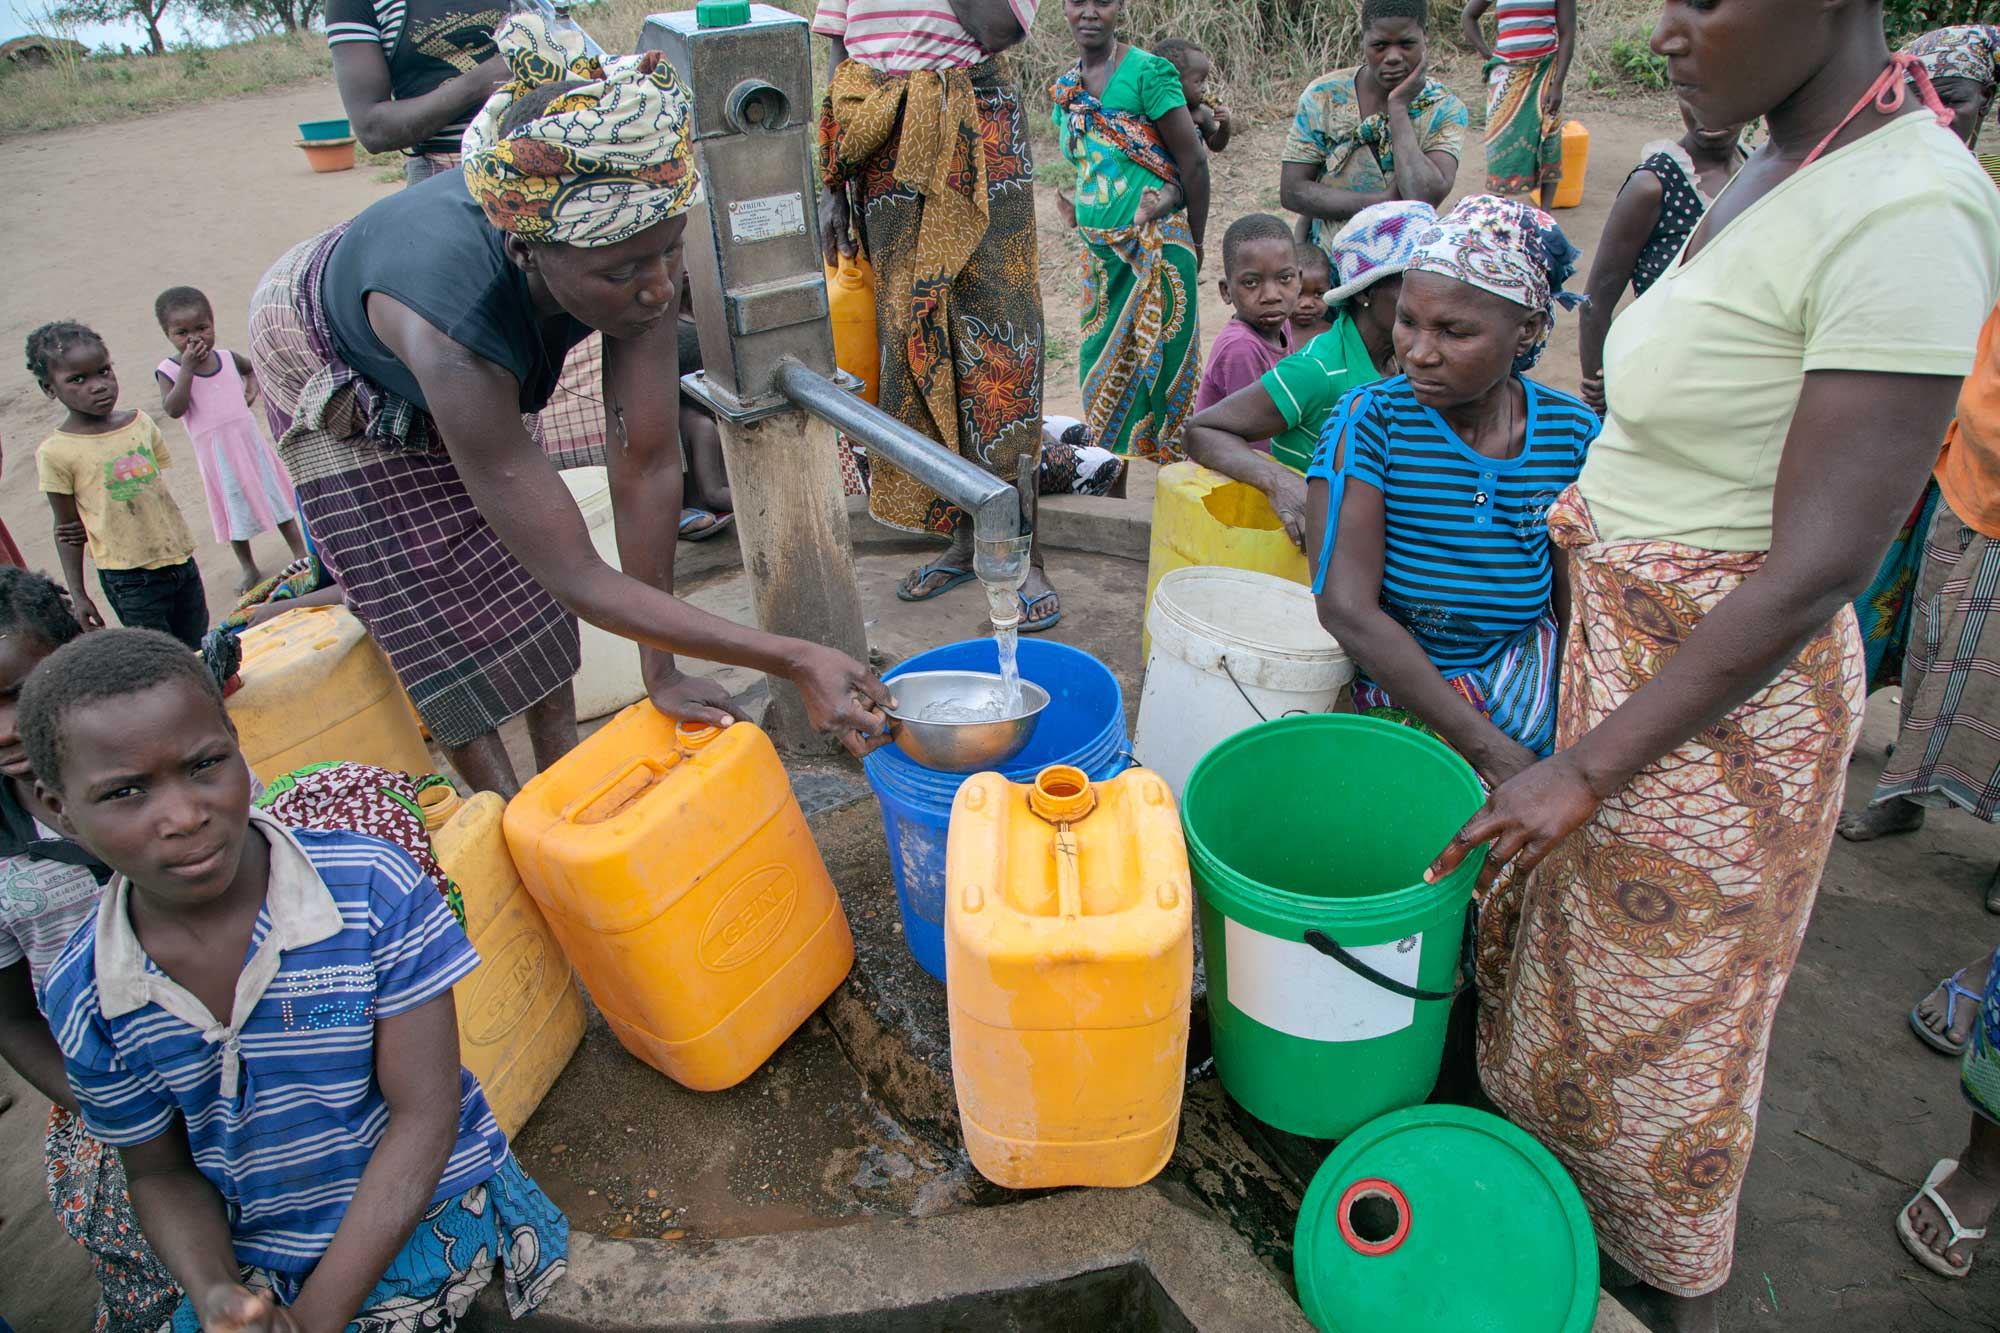 Women and children fill containers from at a capped well.